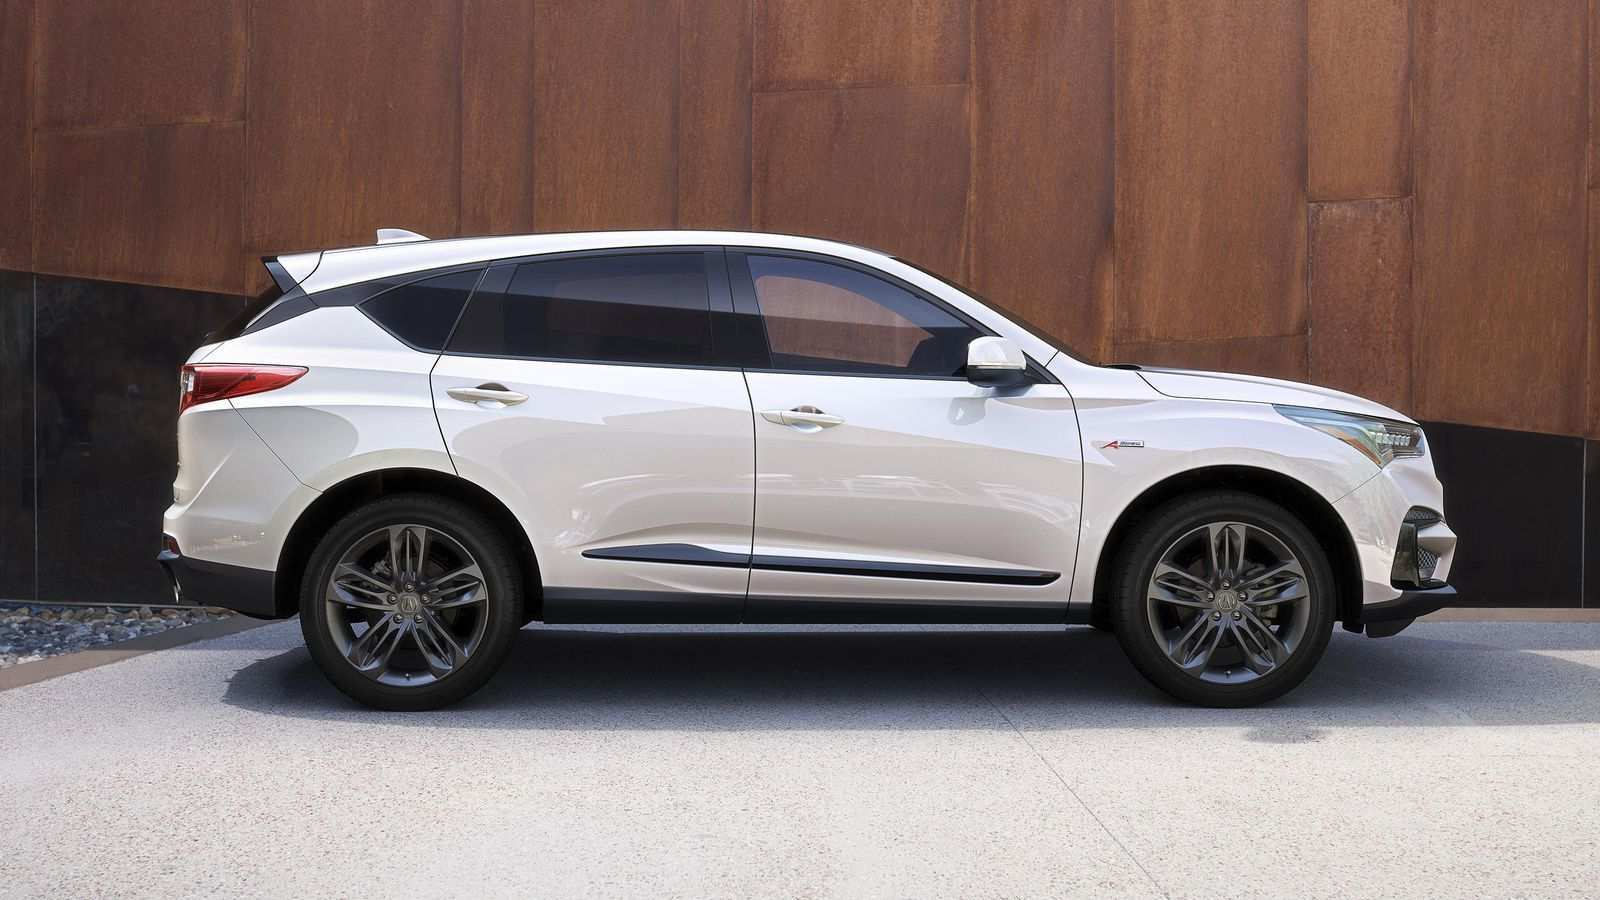 83 All New New Acura Rdx 2019 Option Packages Review And Specs Ratings for New Acura Rdx 2019 Option Packages Review And Specs